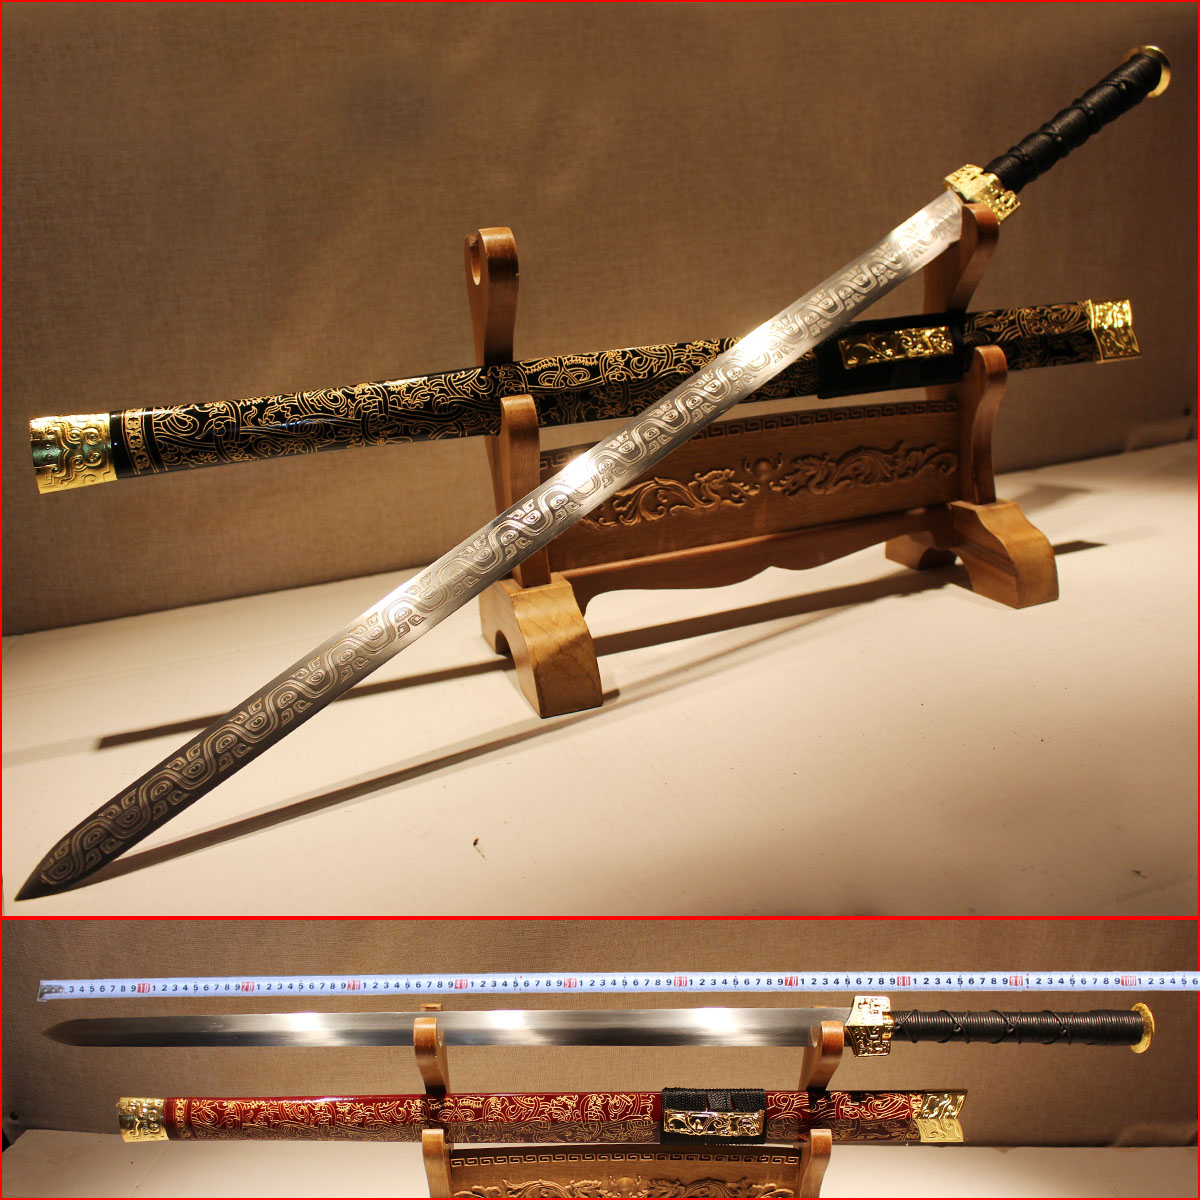 Authentic Sword Hand-made Sword, Han Sword, Long Sword, Hard Sword, Qinjianzhen Residential Sword, Cold Weapon Special Price Unopened